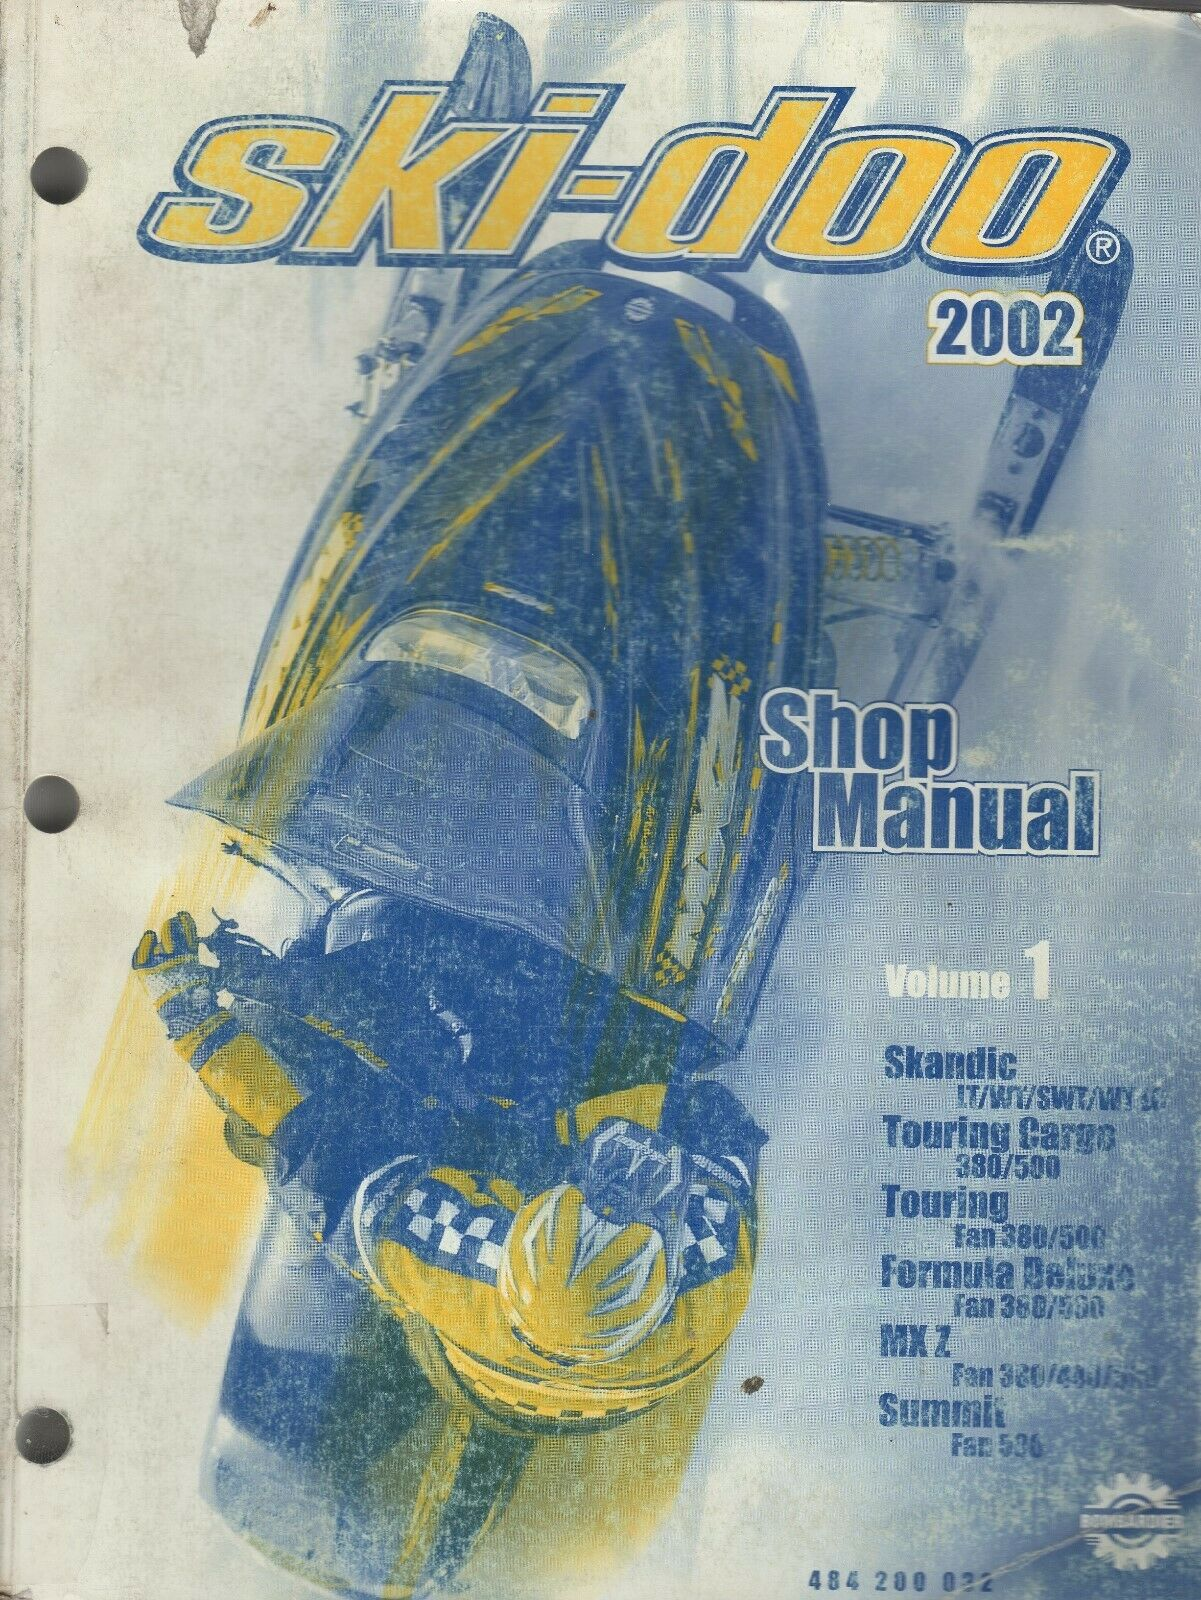 2002 SKI-DOO SNOWMOBILE VOLUME 1, (SEE COVER LIST) SHOP MANUAL 484 200 032 (614)